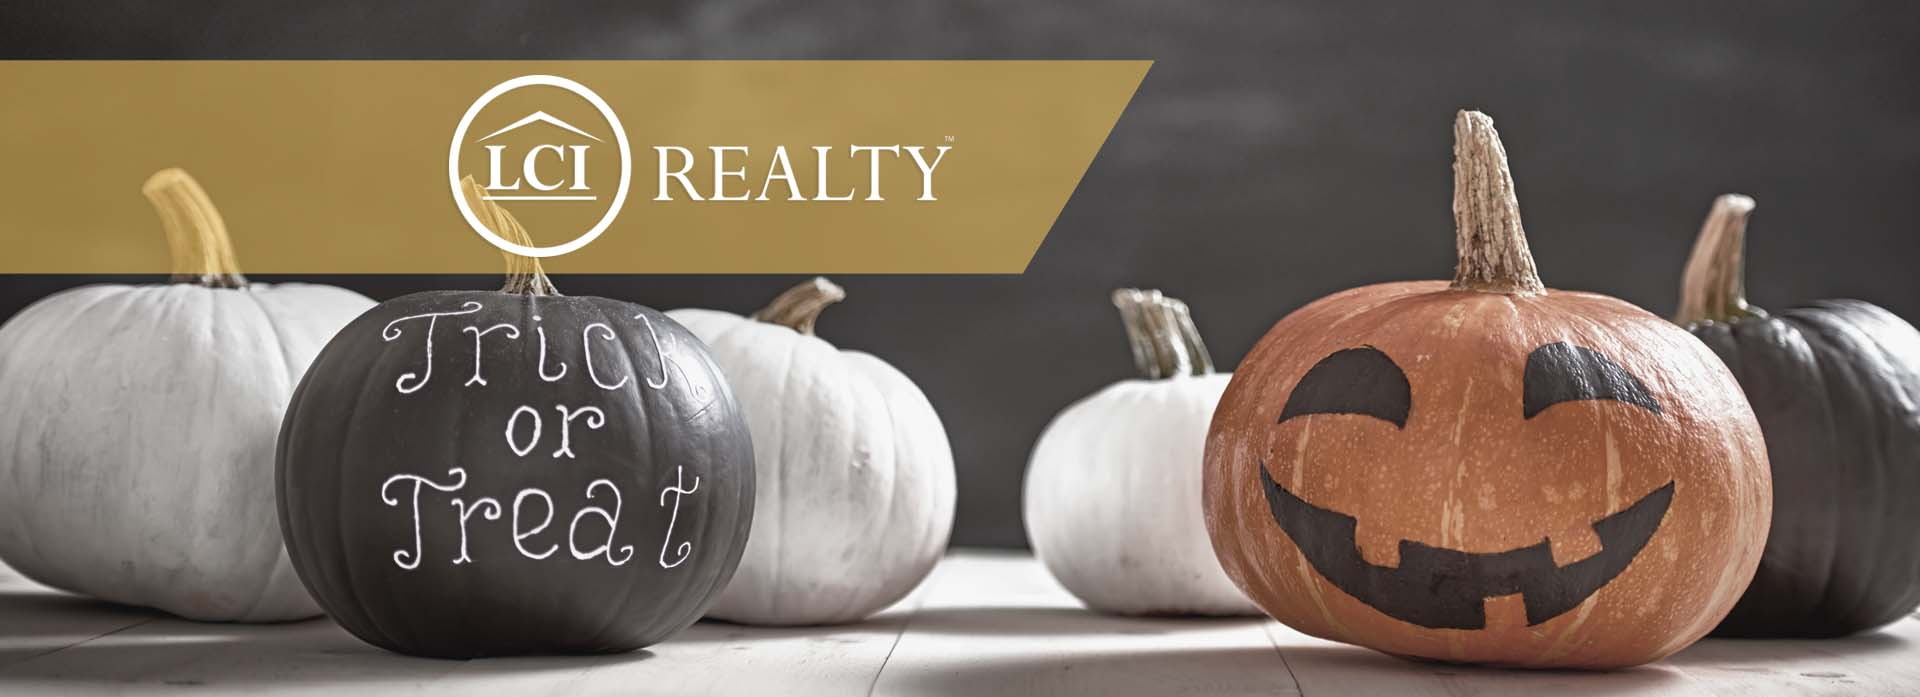 Don't Get Spooked By Halloween Pop-Up Real Estate Deals